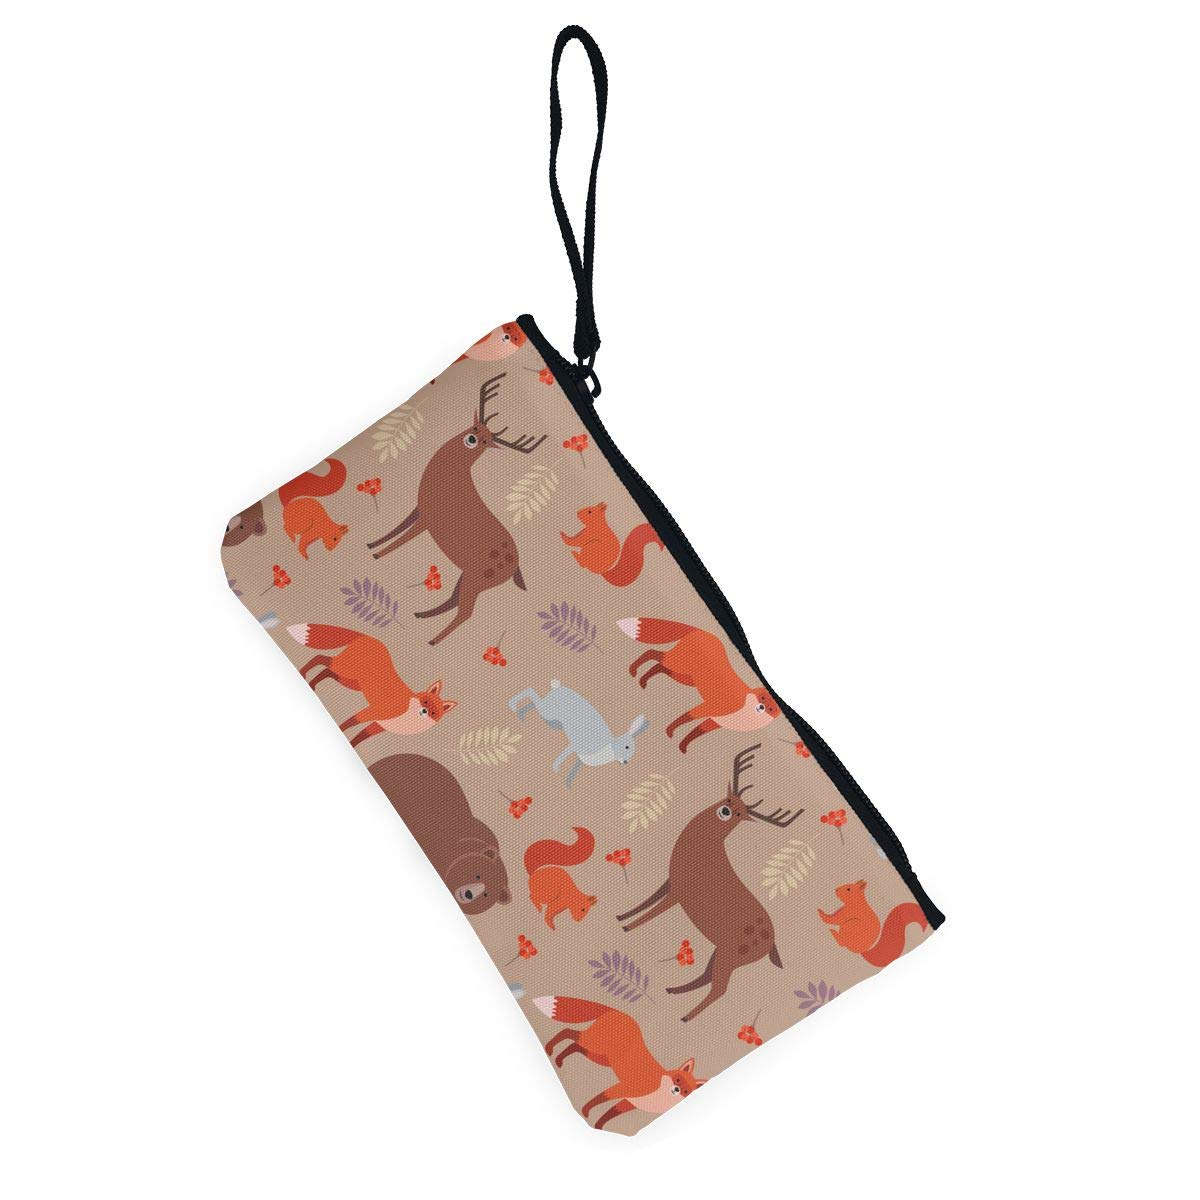 Forest Animals Pattern Canvas Coin Purse Cute Change Pouch Wallet Bag Multifunctional Cellphone Bag with Handle